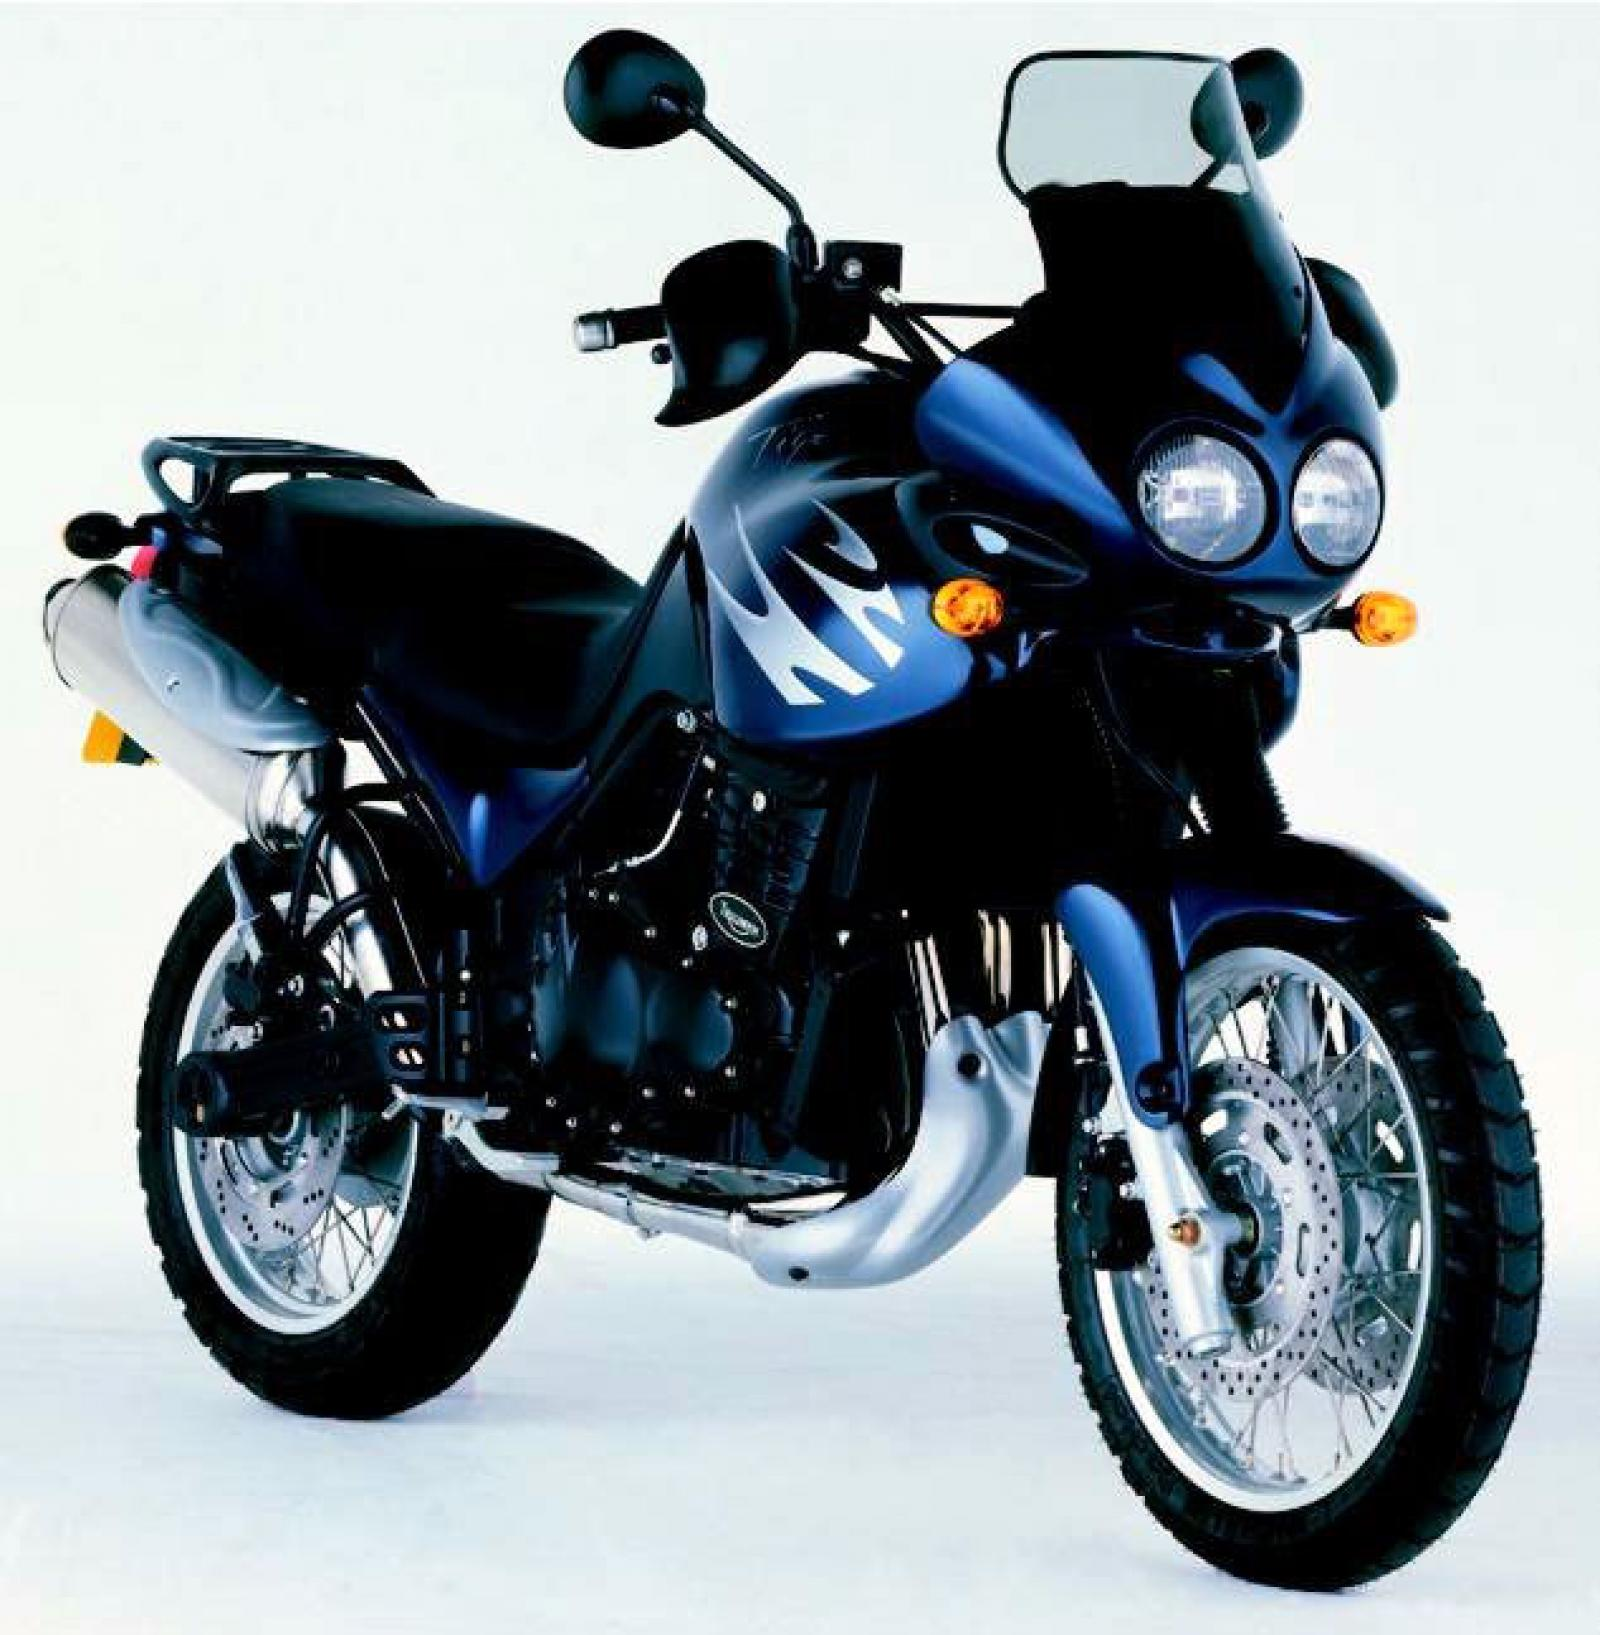 Triumph Tiger 900 2000 wallpapers #145730